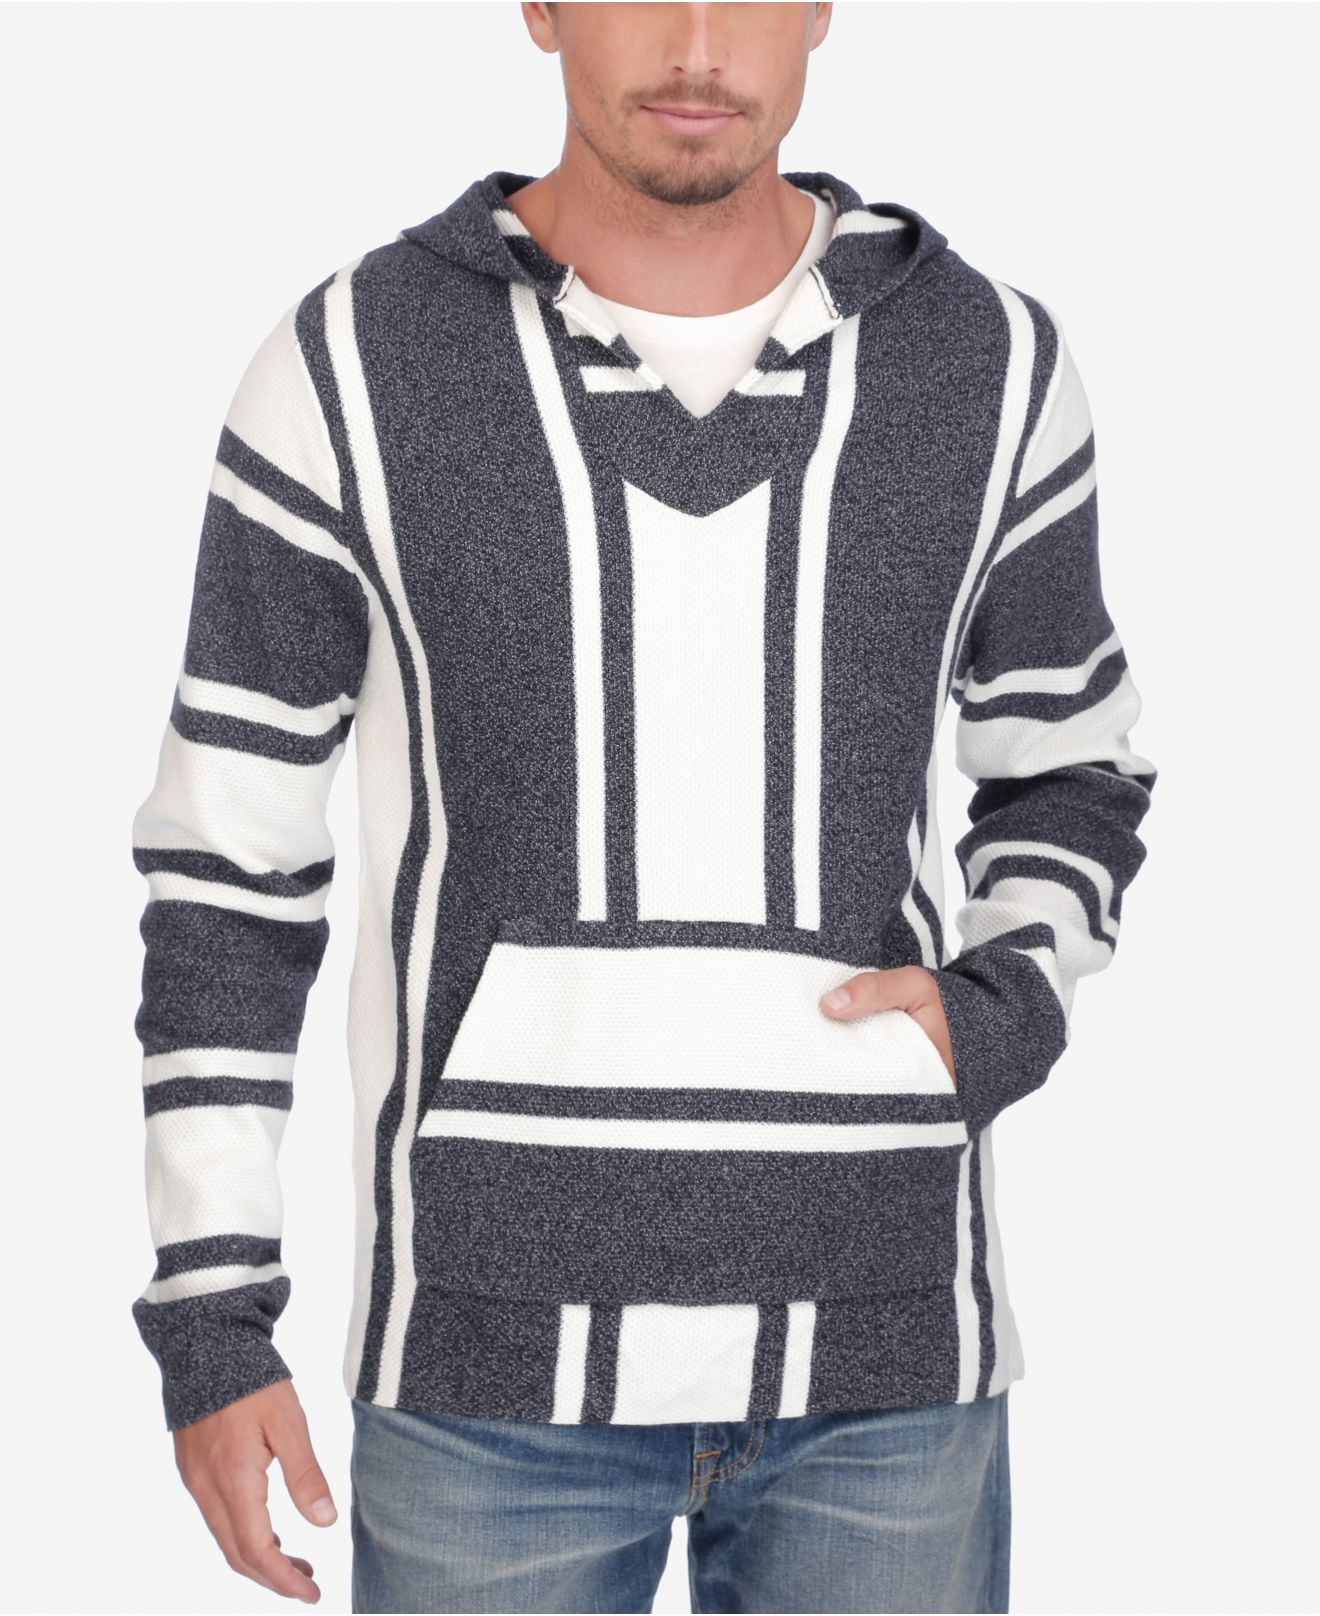 Drug Rug Mexican Baja Hoodies, Hippie Clothing & Unique Gifts at The Hippie Shop. Peace, Love & Happy Shopping!